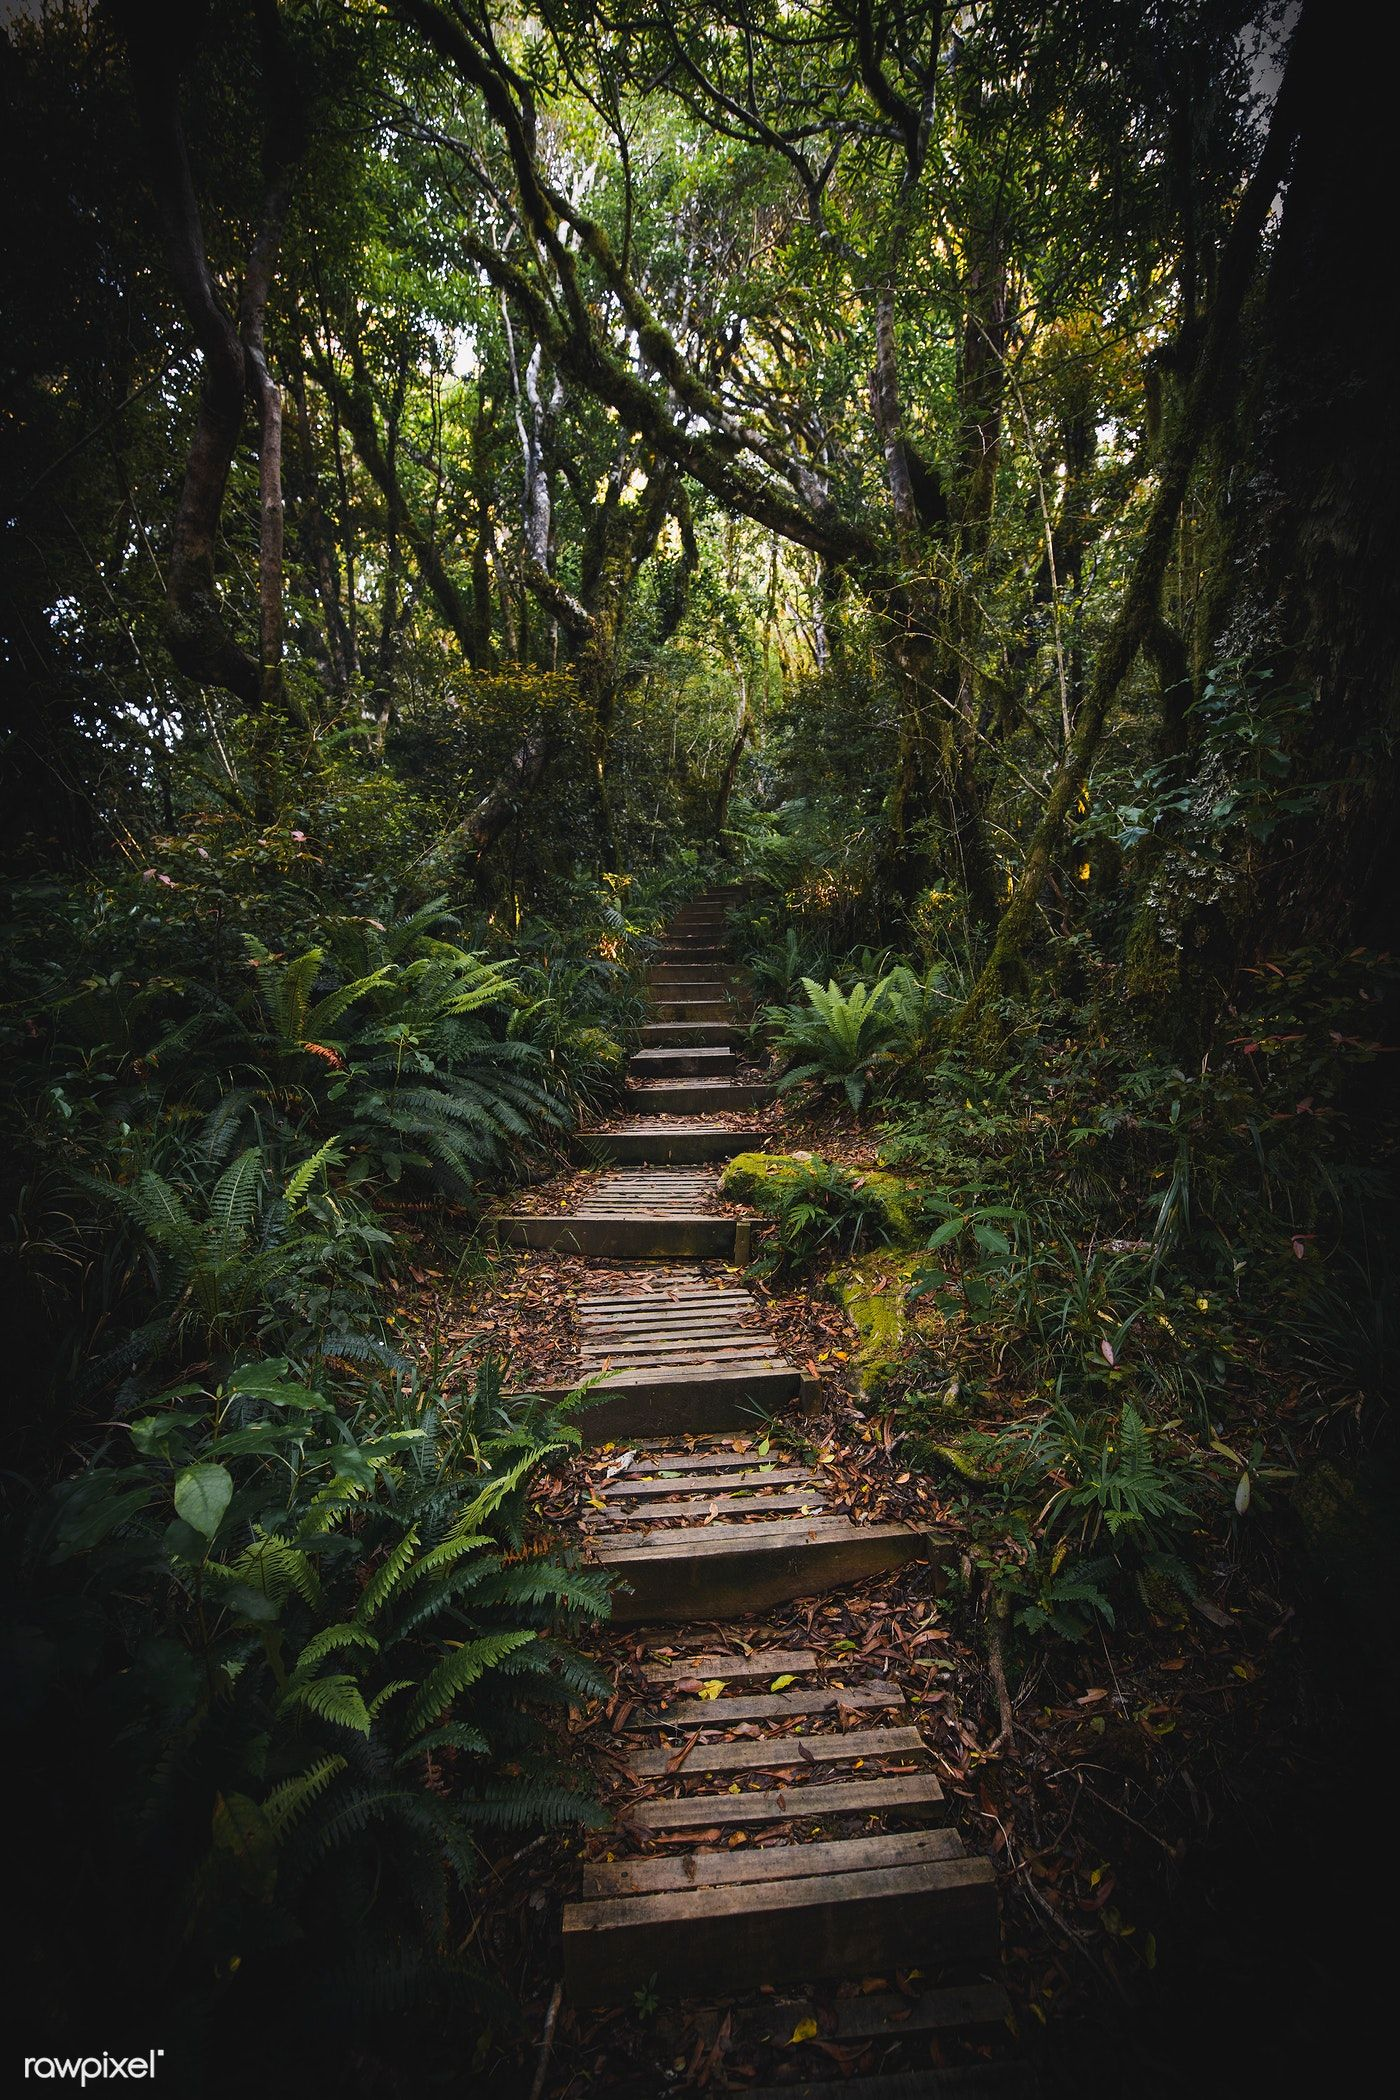 Download premium image of Pathway in a tropical jungle 595311